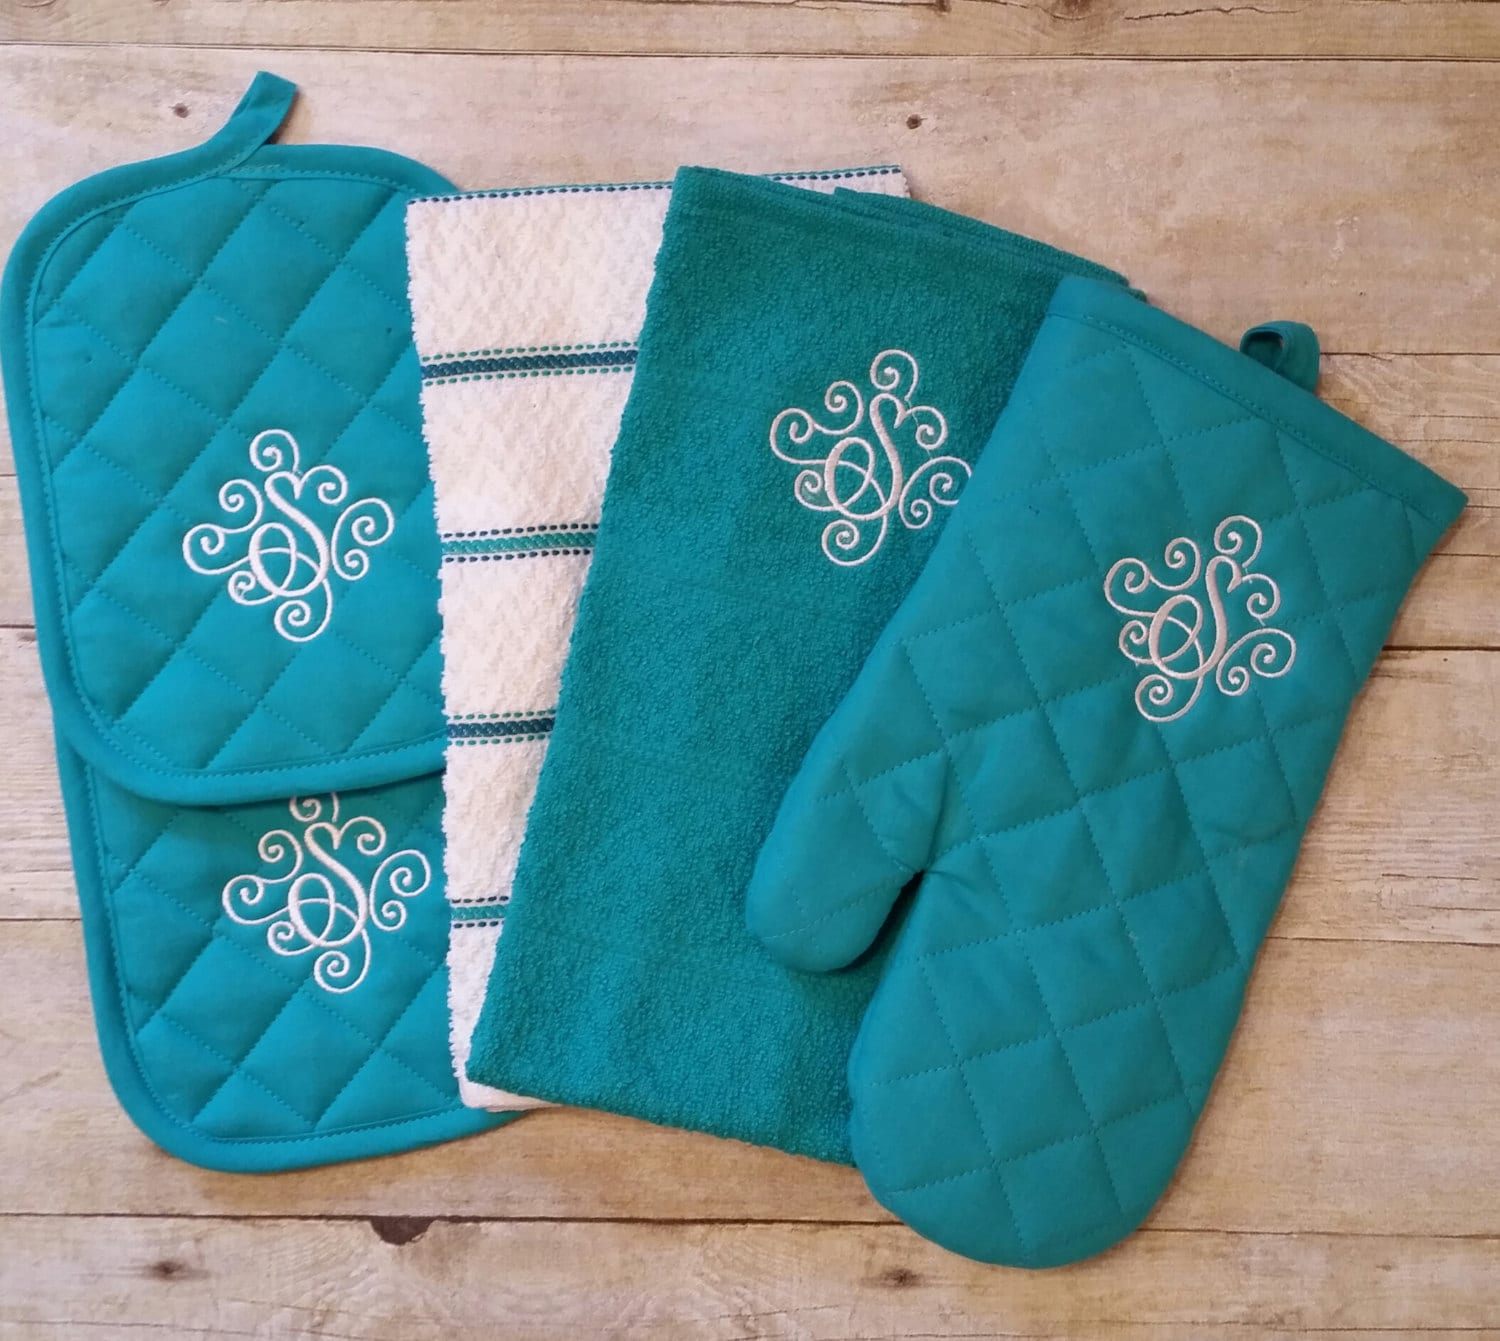 Monogrammed personalized kitchen towel set by OhSewCuteLLC